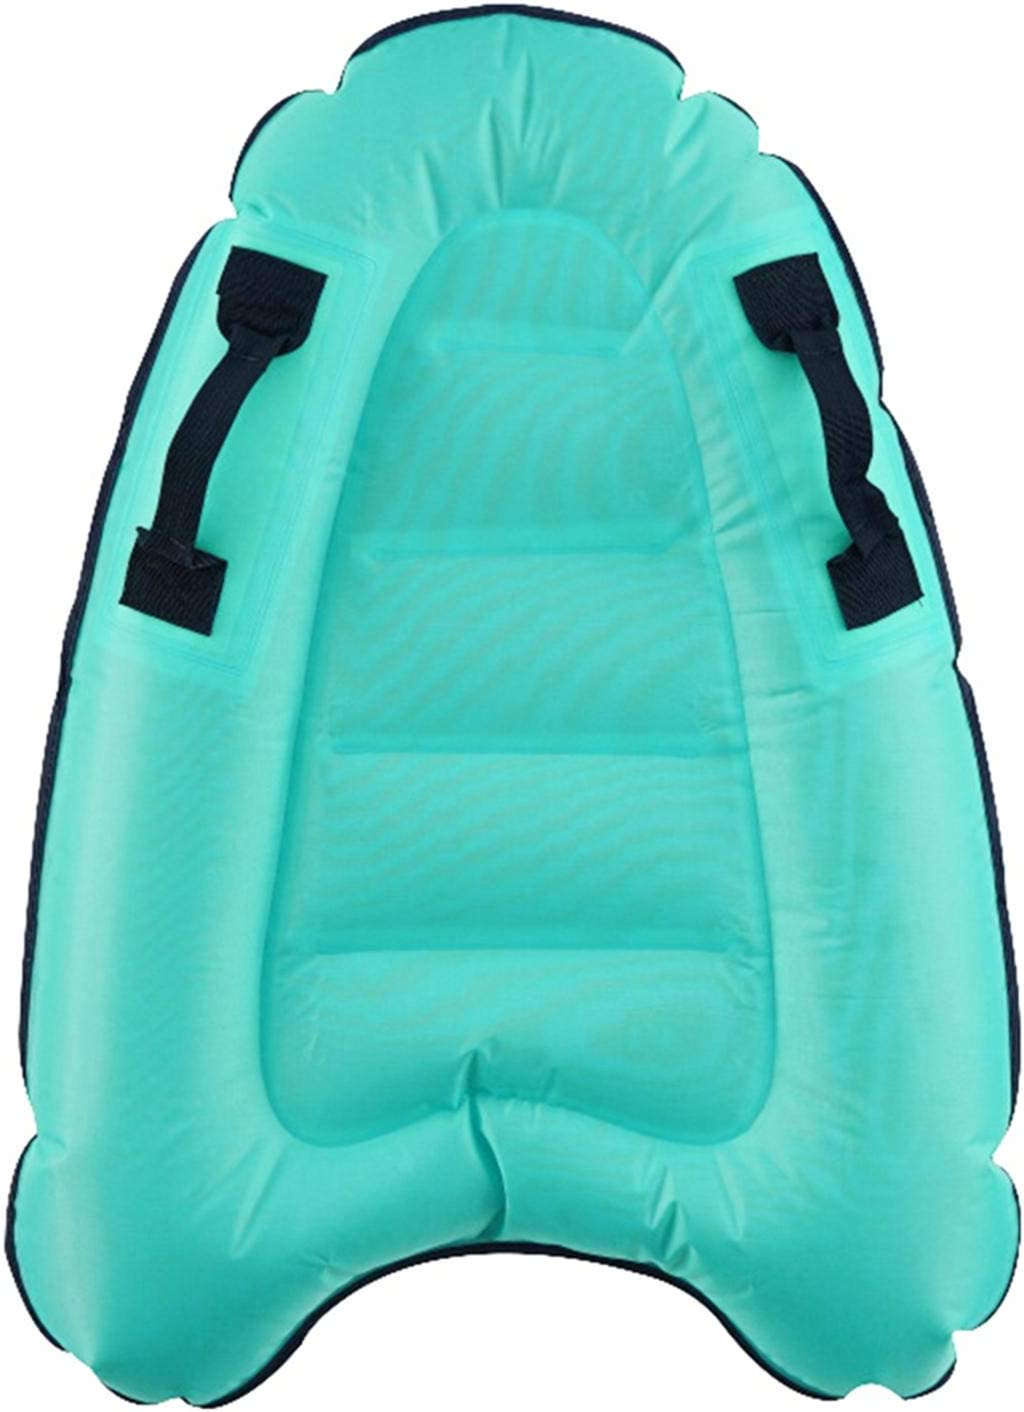 beiyoule Inflatable Miami NEW Mall Surf Board Body H with